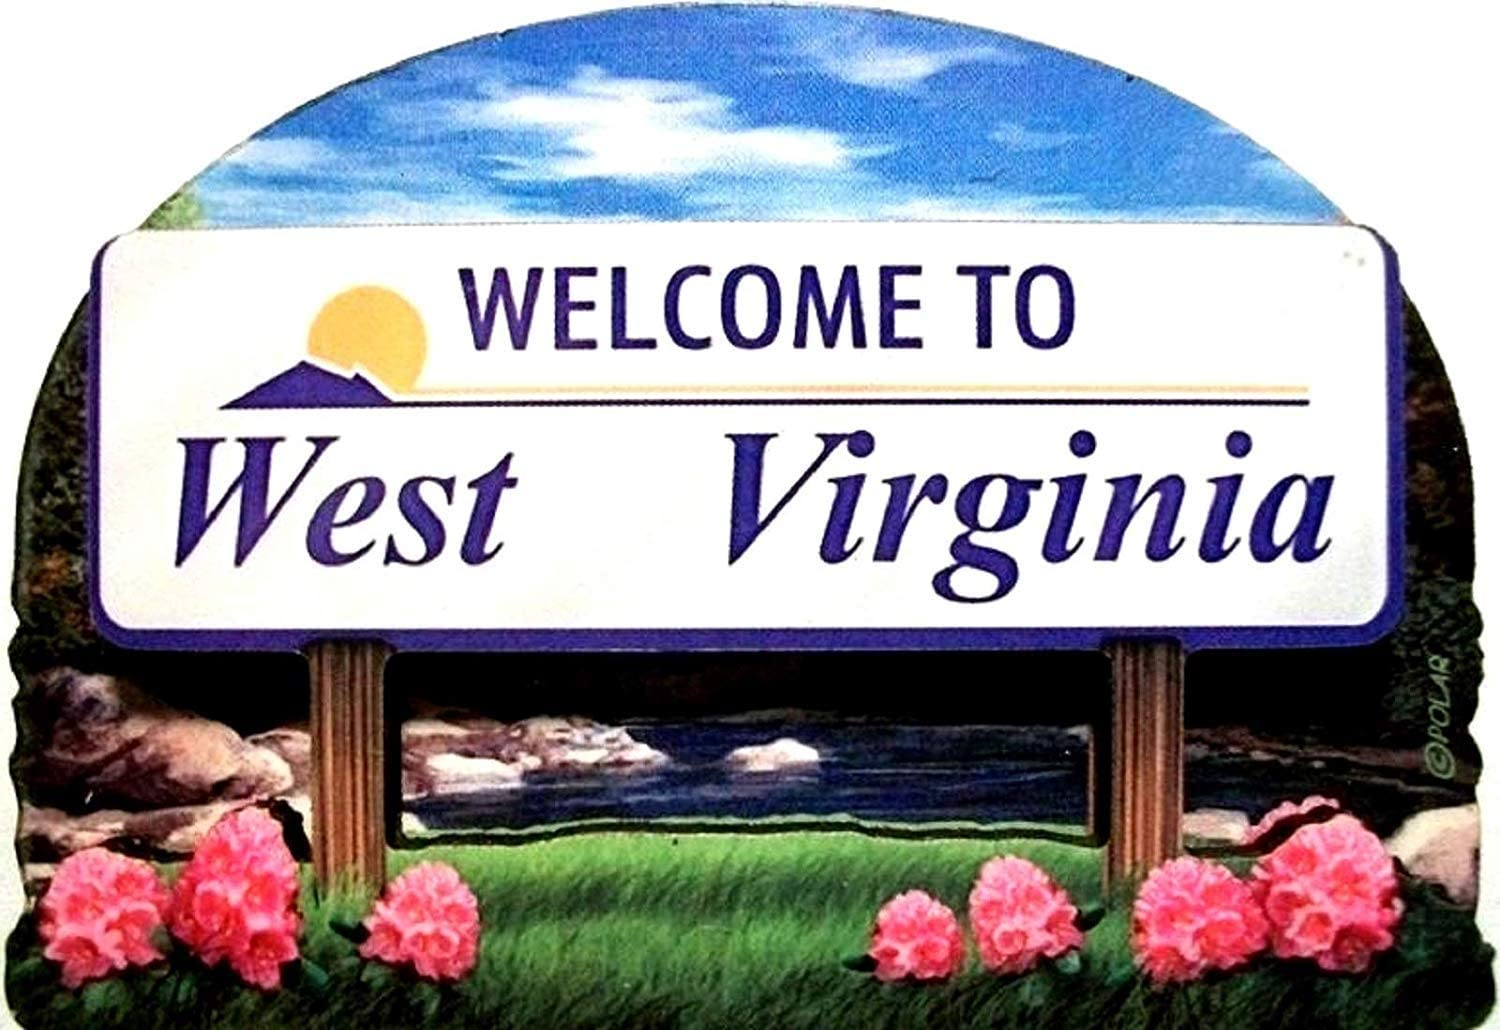 West Virginia State Welcome Sign Wood Fridge Magnet 2